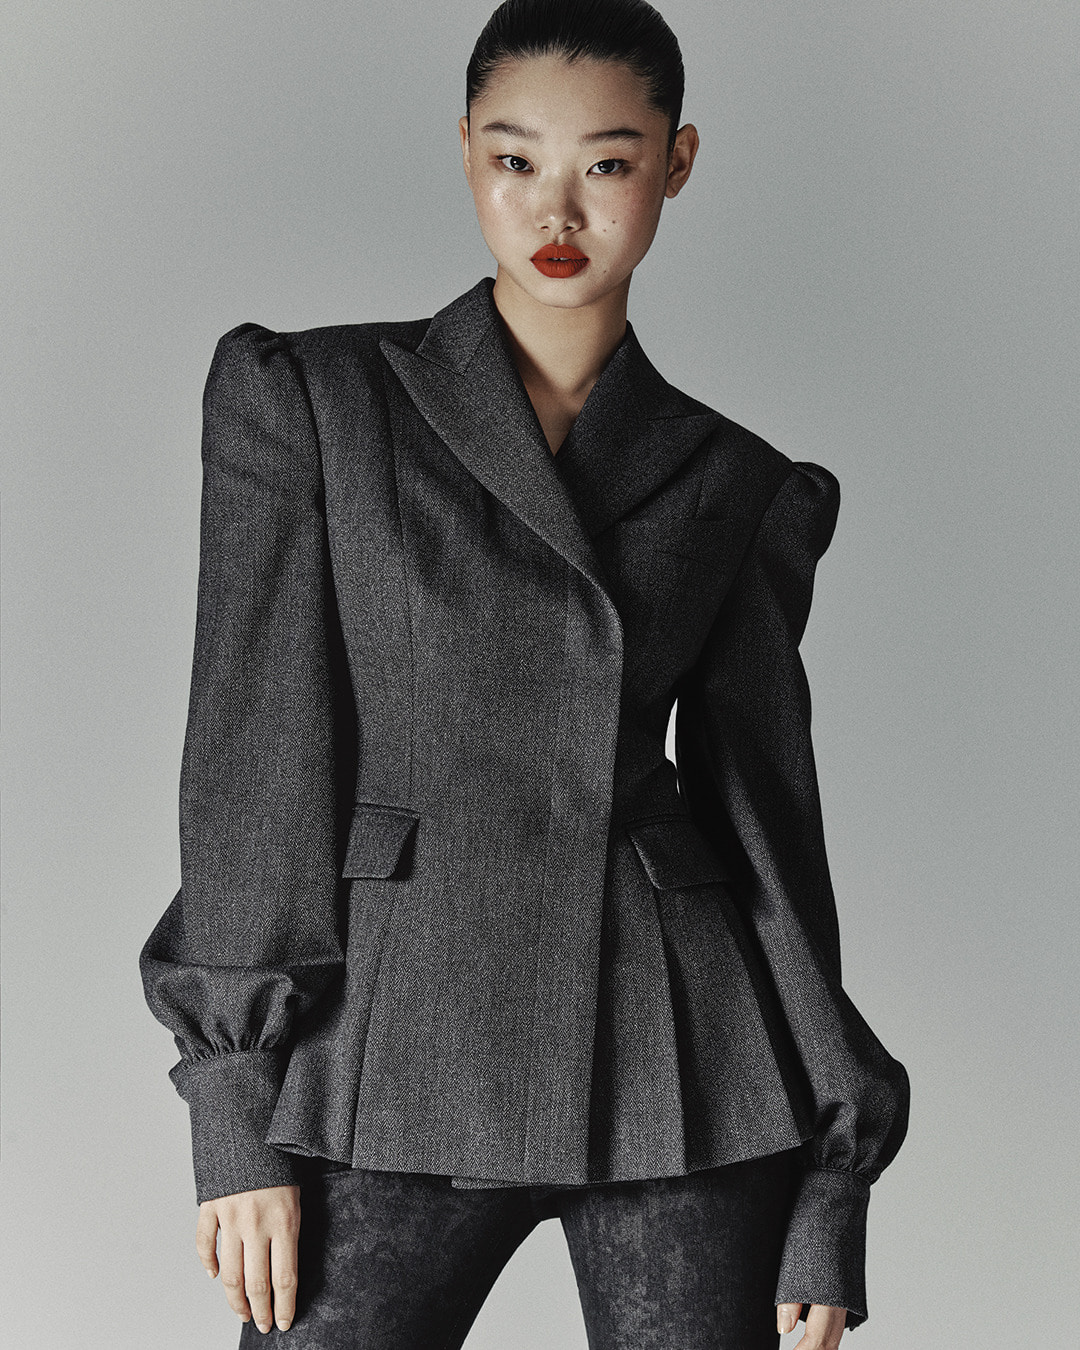 GRAY HERRINGBONE PUFF JACKET